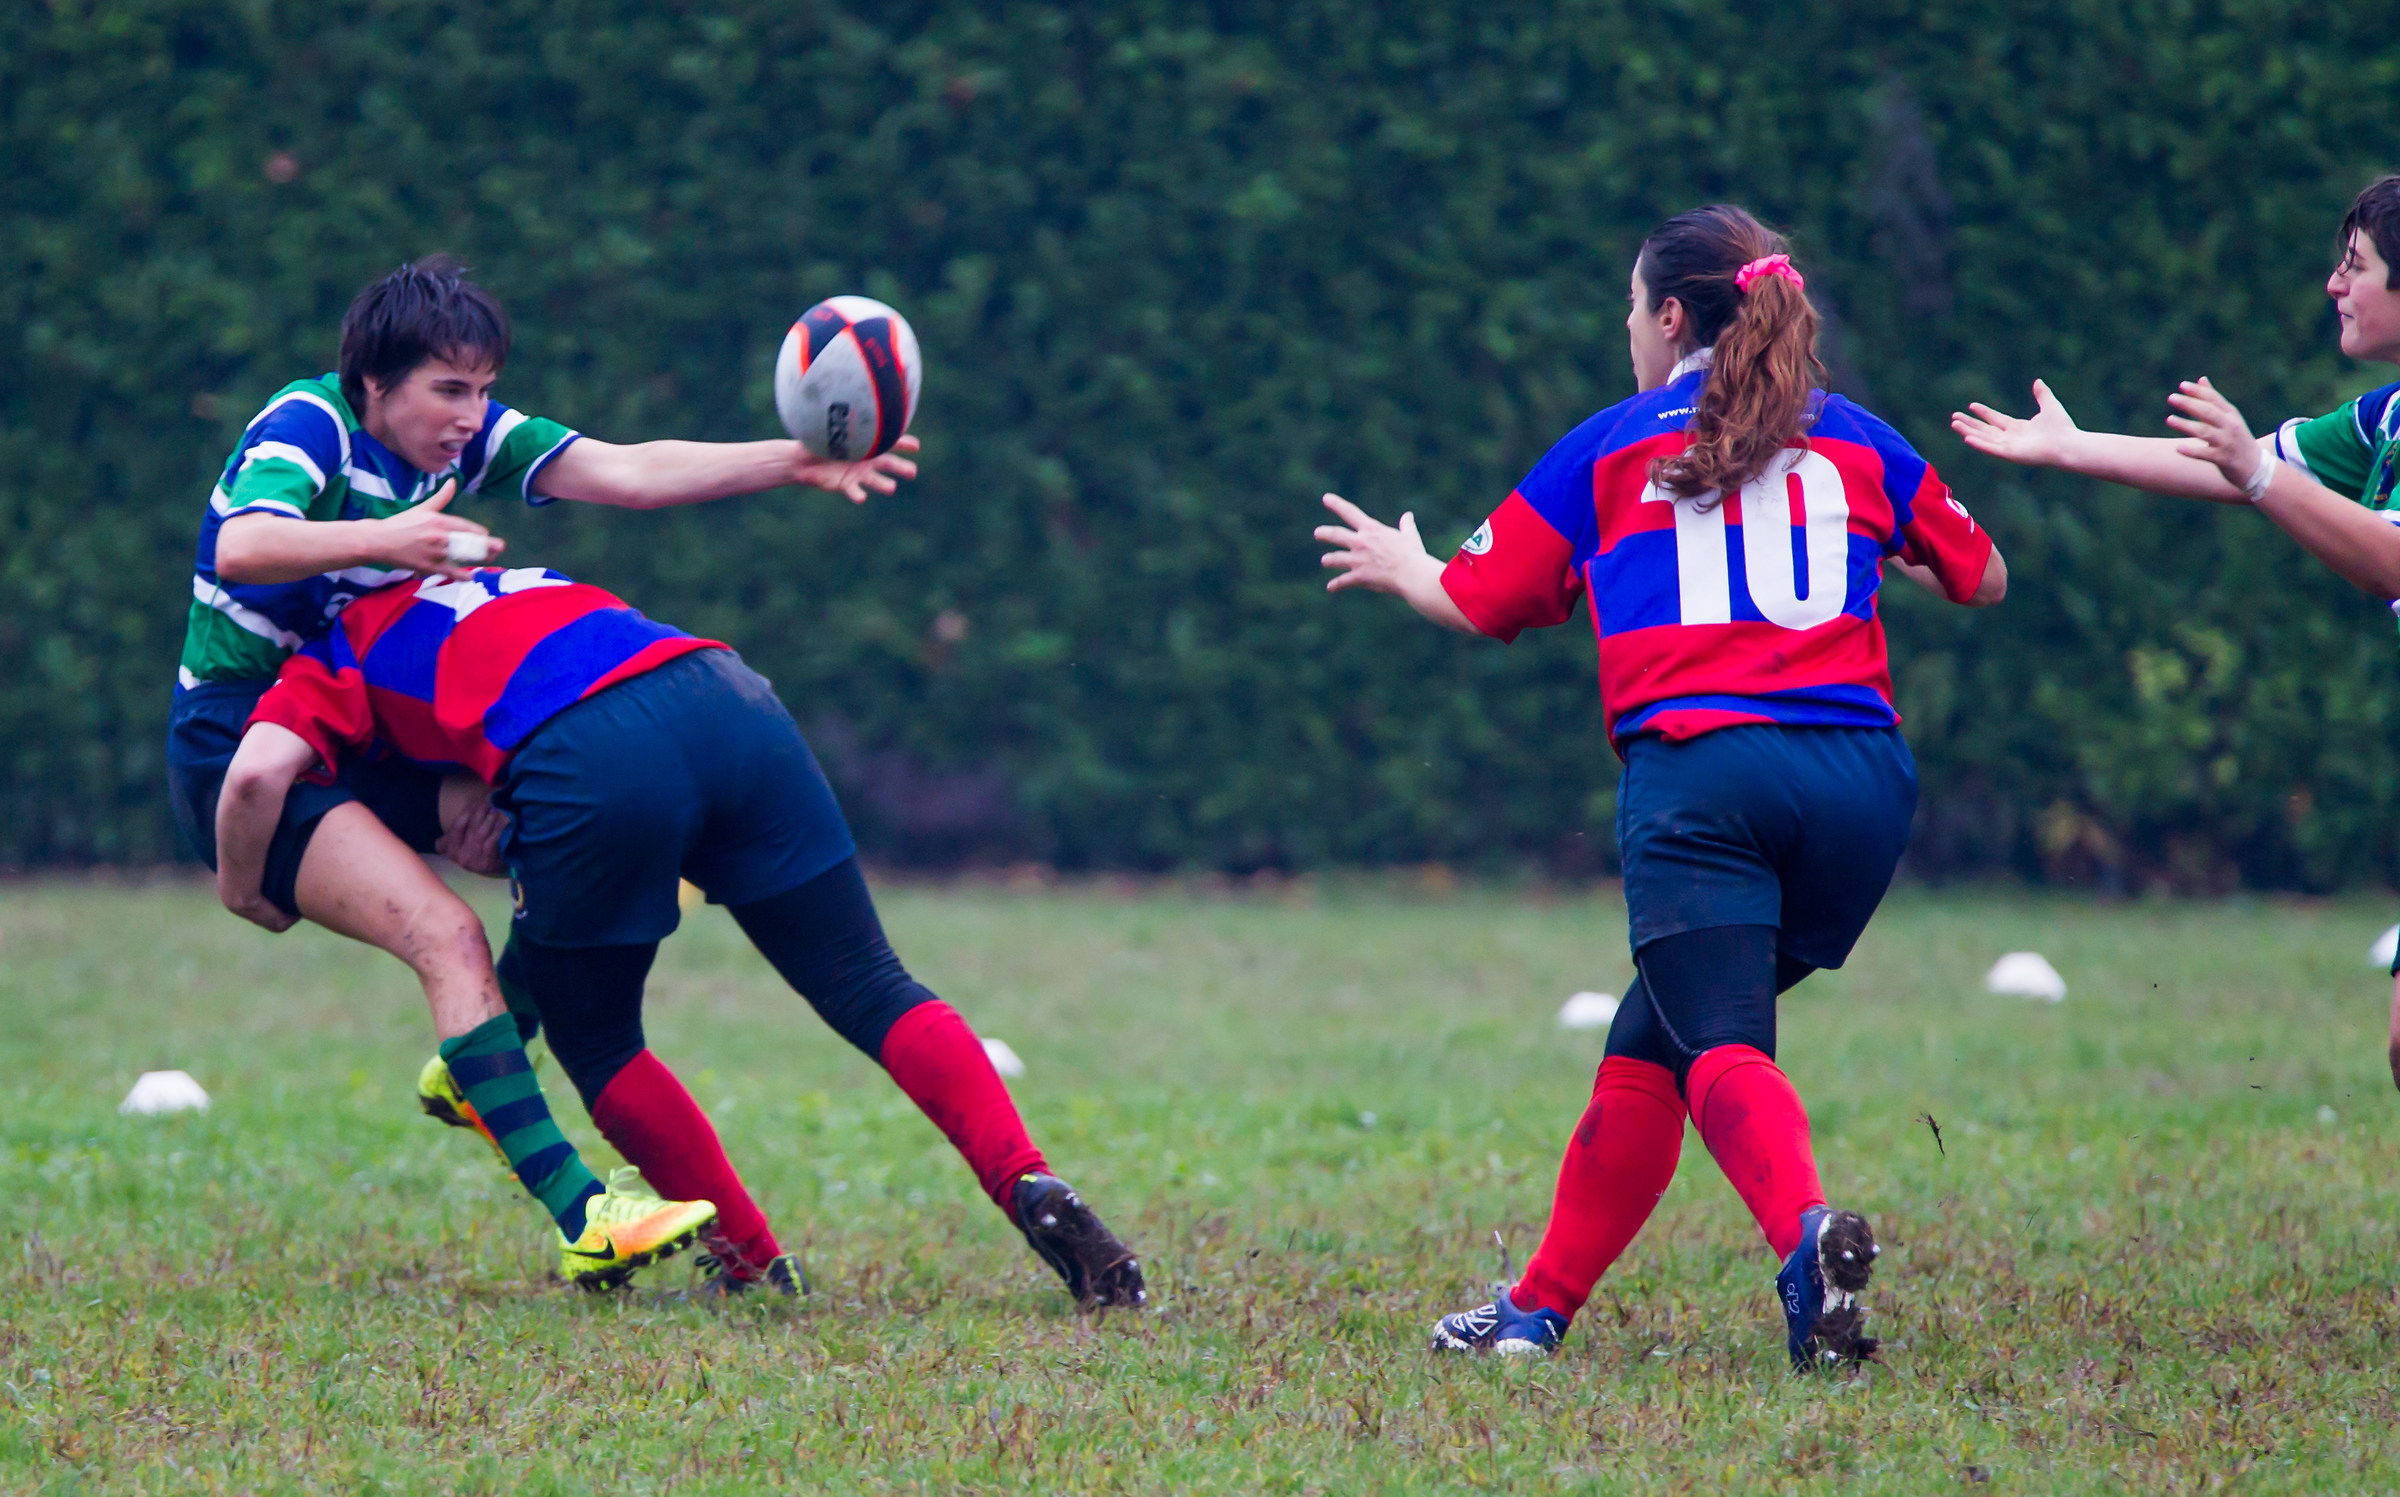 Rugby female. That determination!...